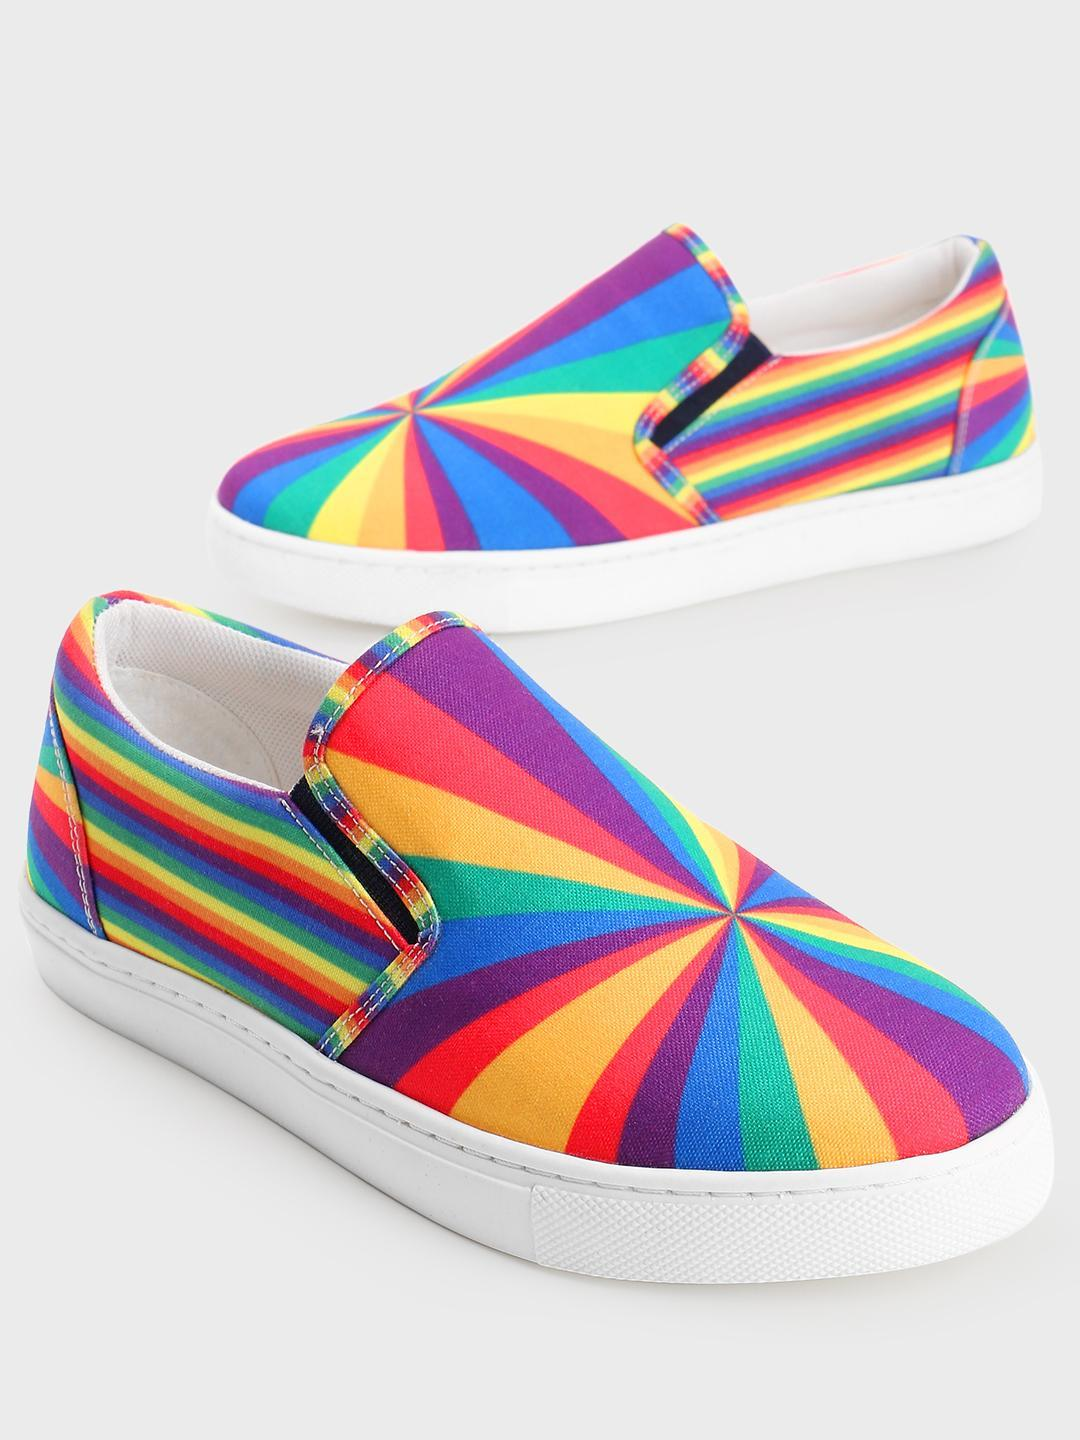 Manish Arora Paris X KOOVS Multi Digital Tuzki Rainbow Print Plimsolls 1